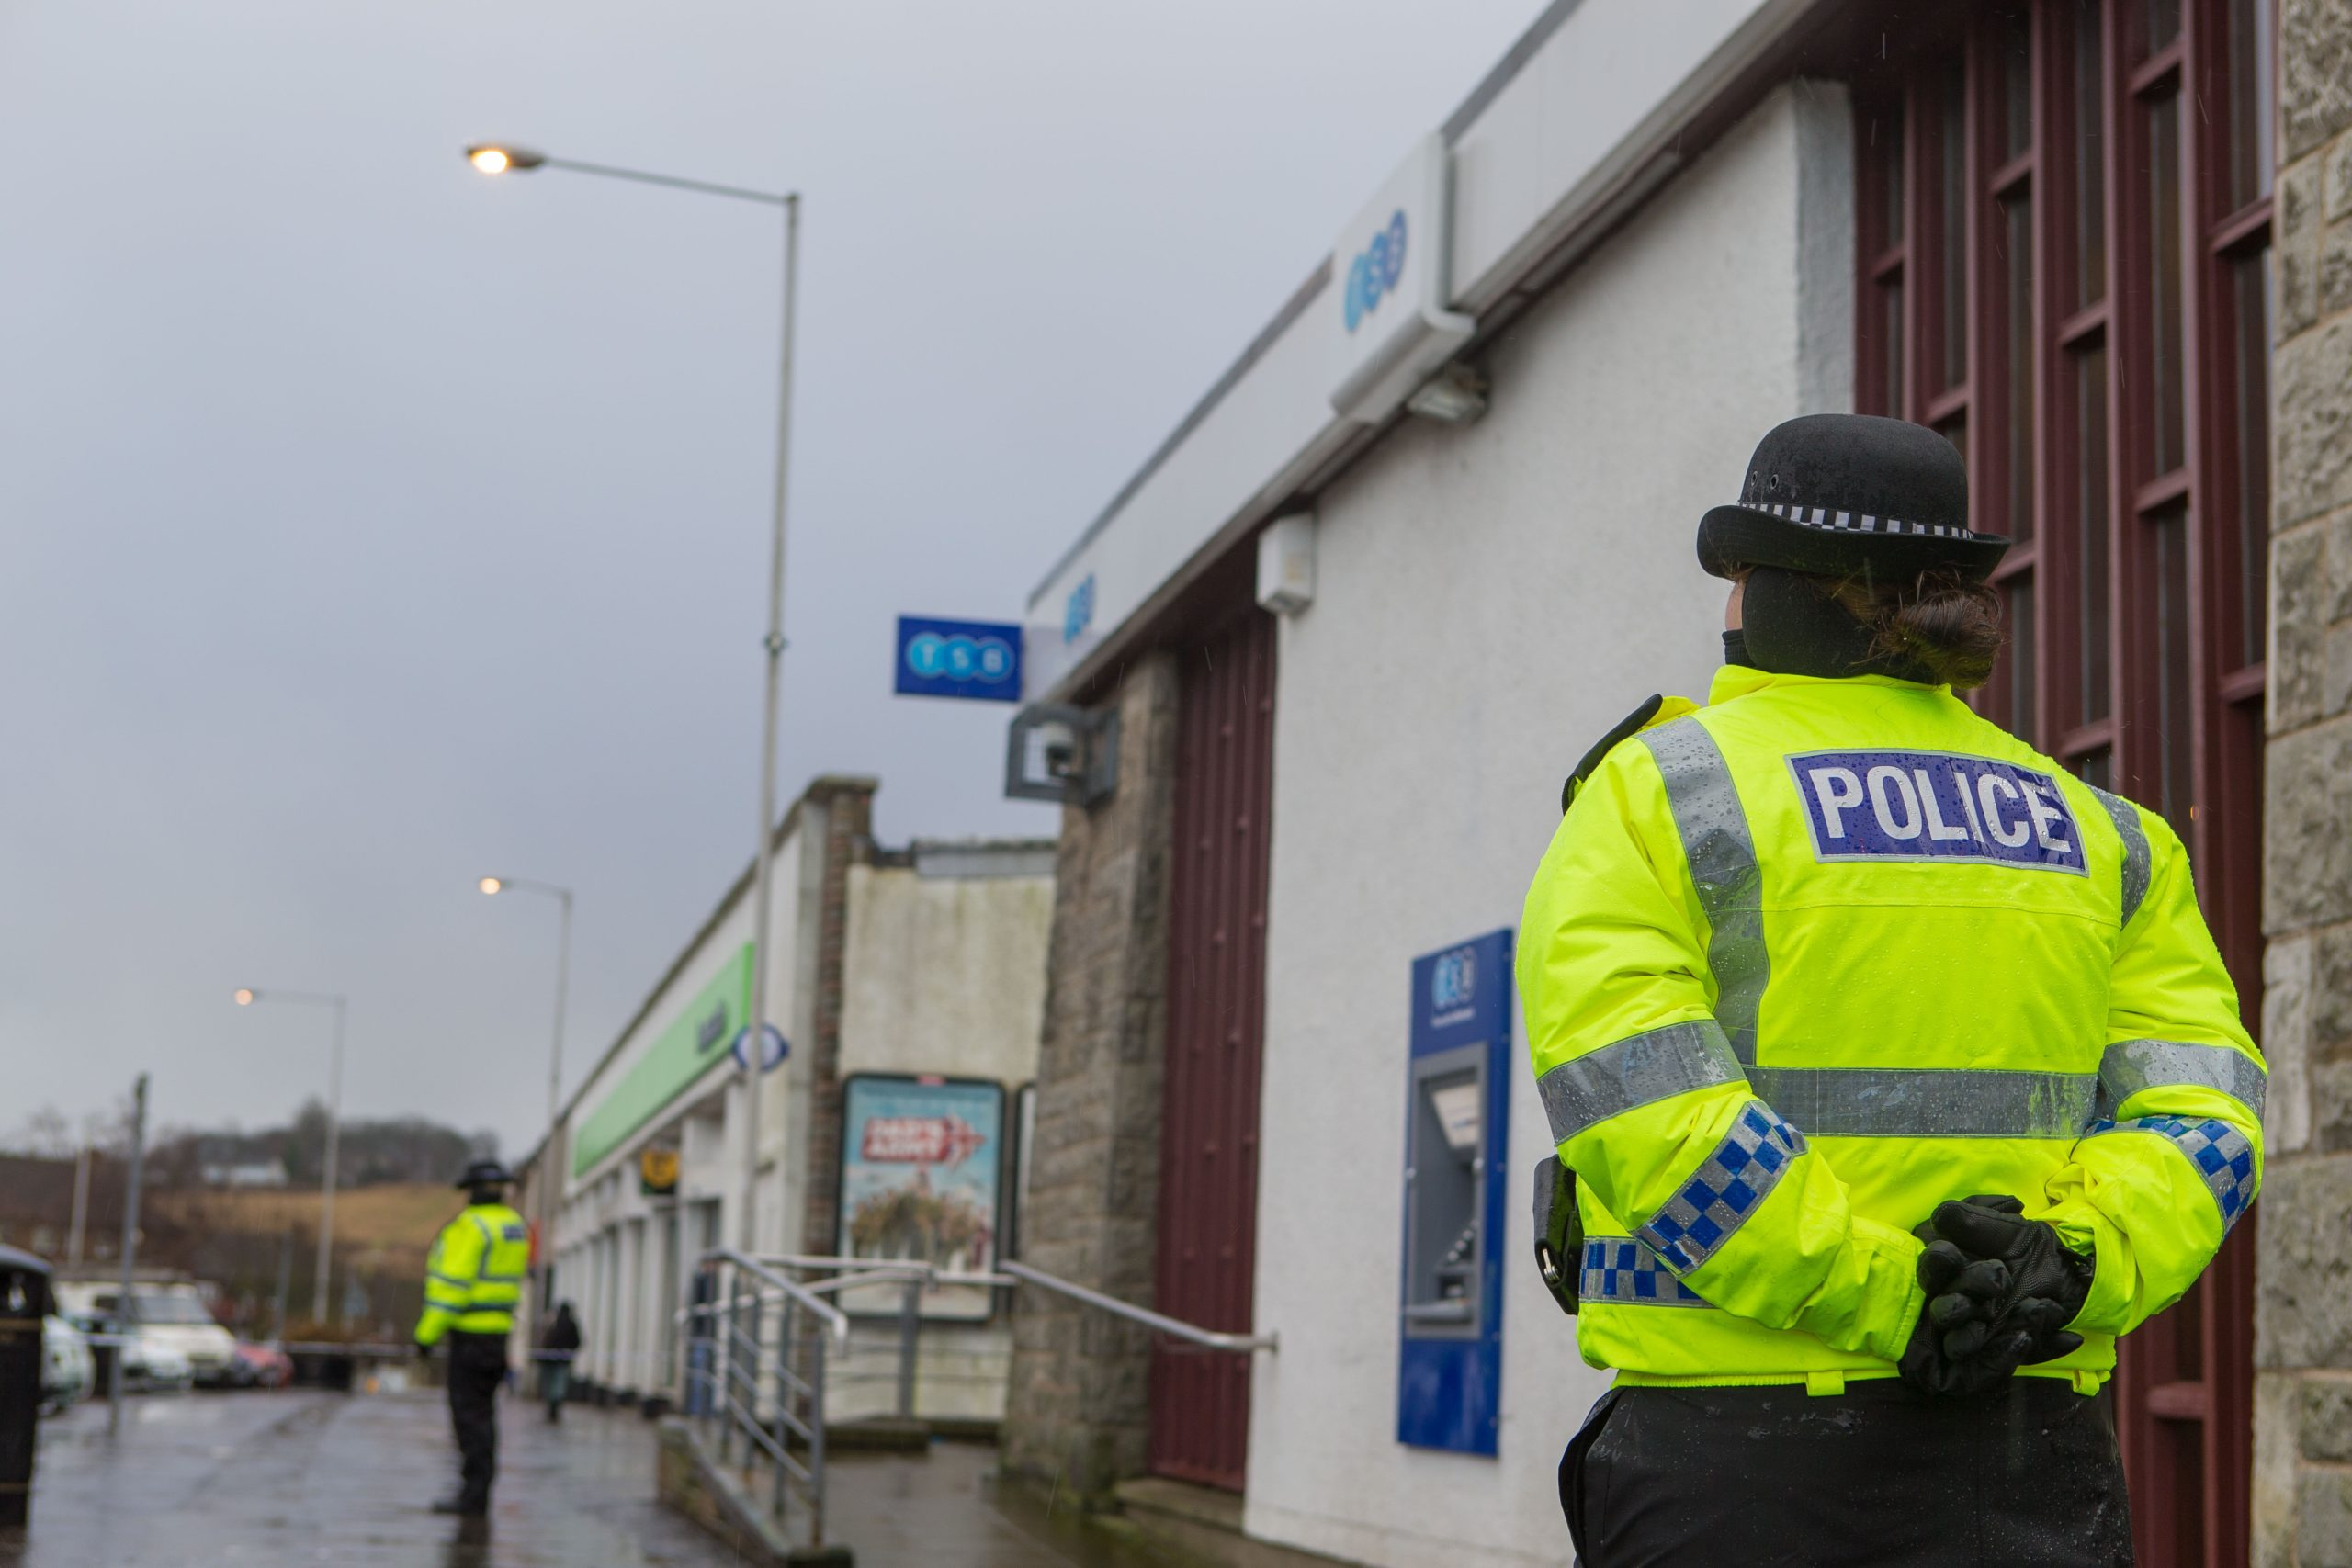 The scene outside the TSB Bank in Kirkcaldy following the armed robbery at the time.